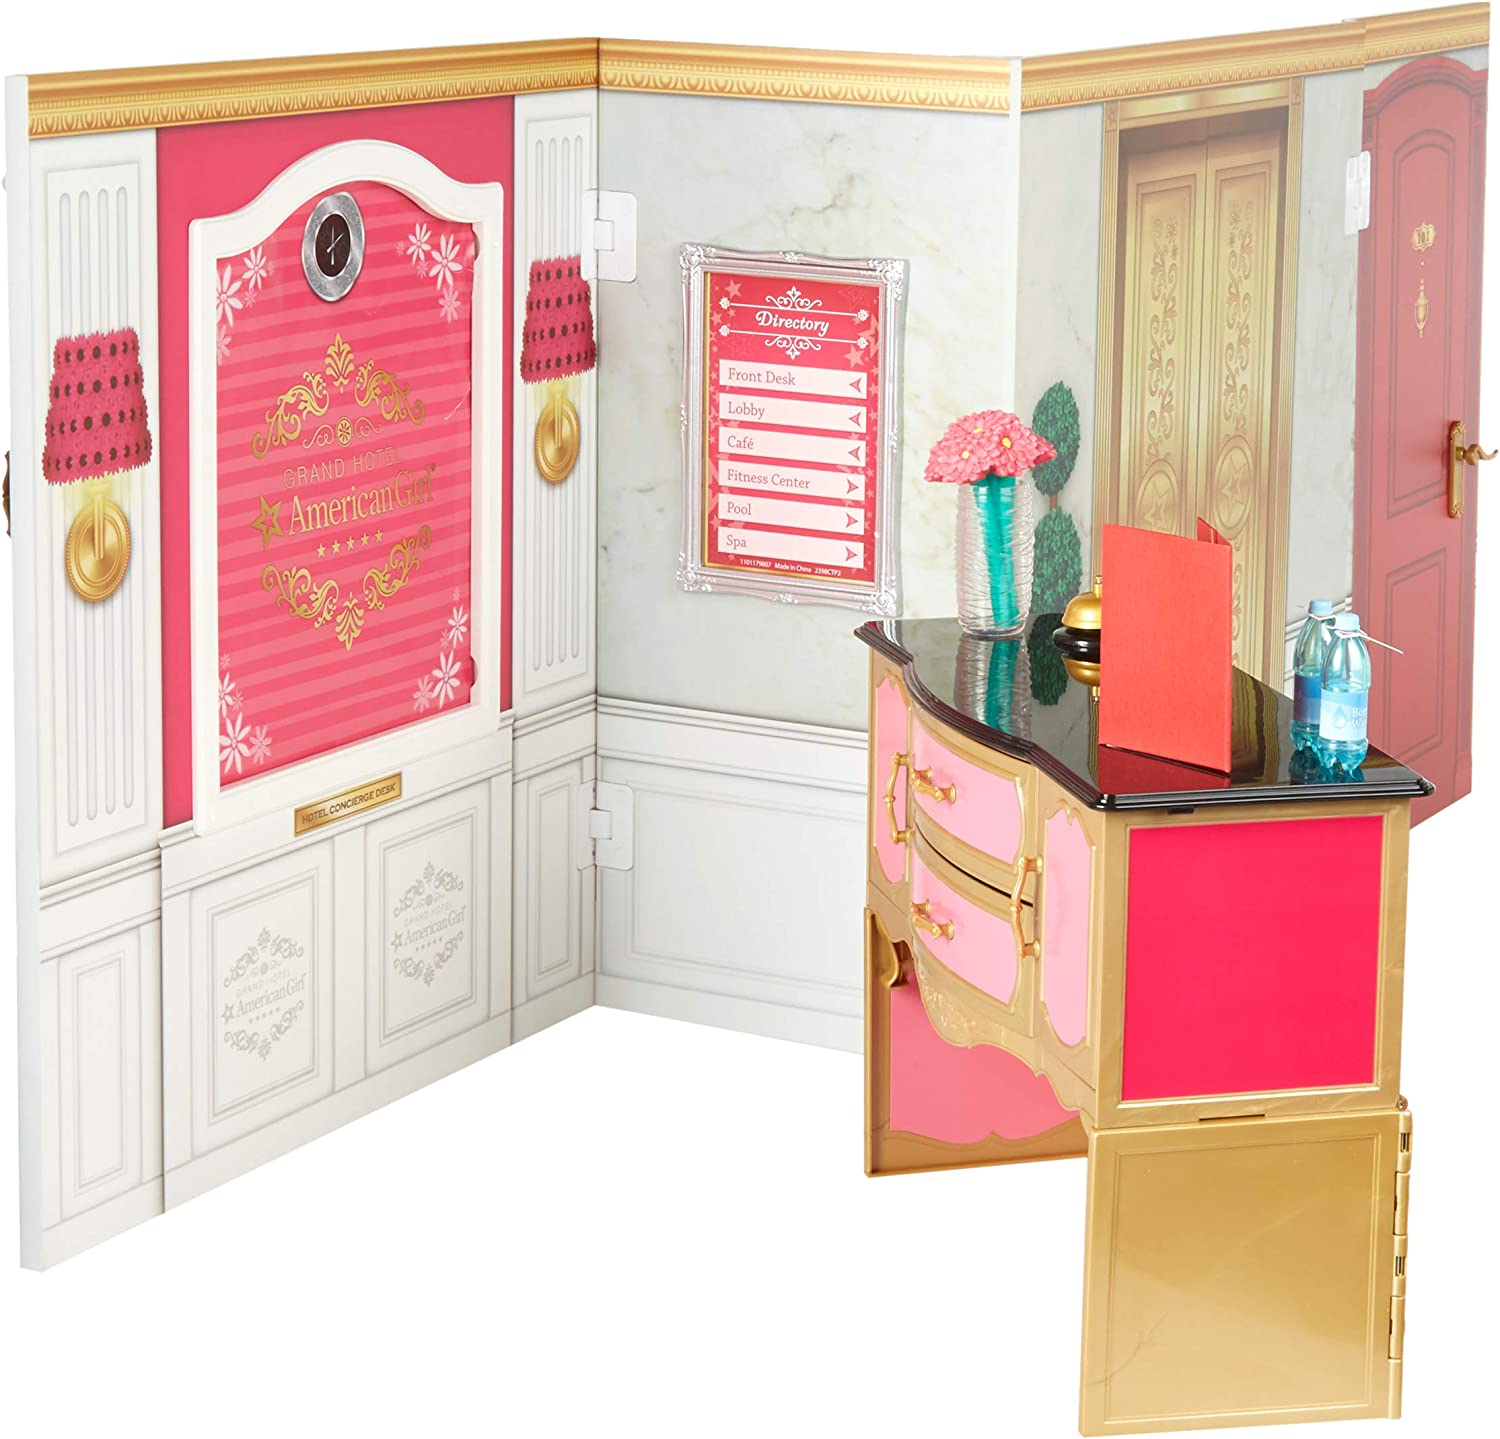 American Girl 2017 Grand Hotel Pink Towel with Star Embroidery For Doll Only